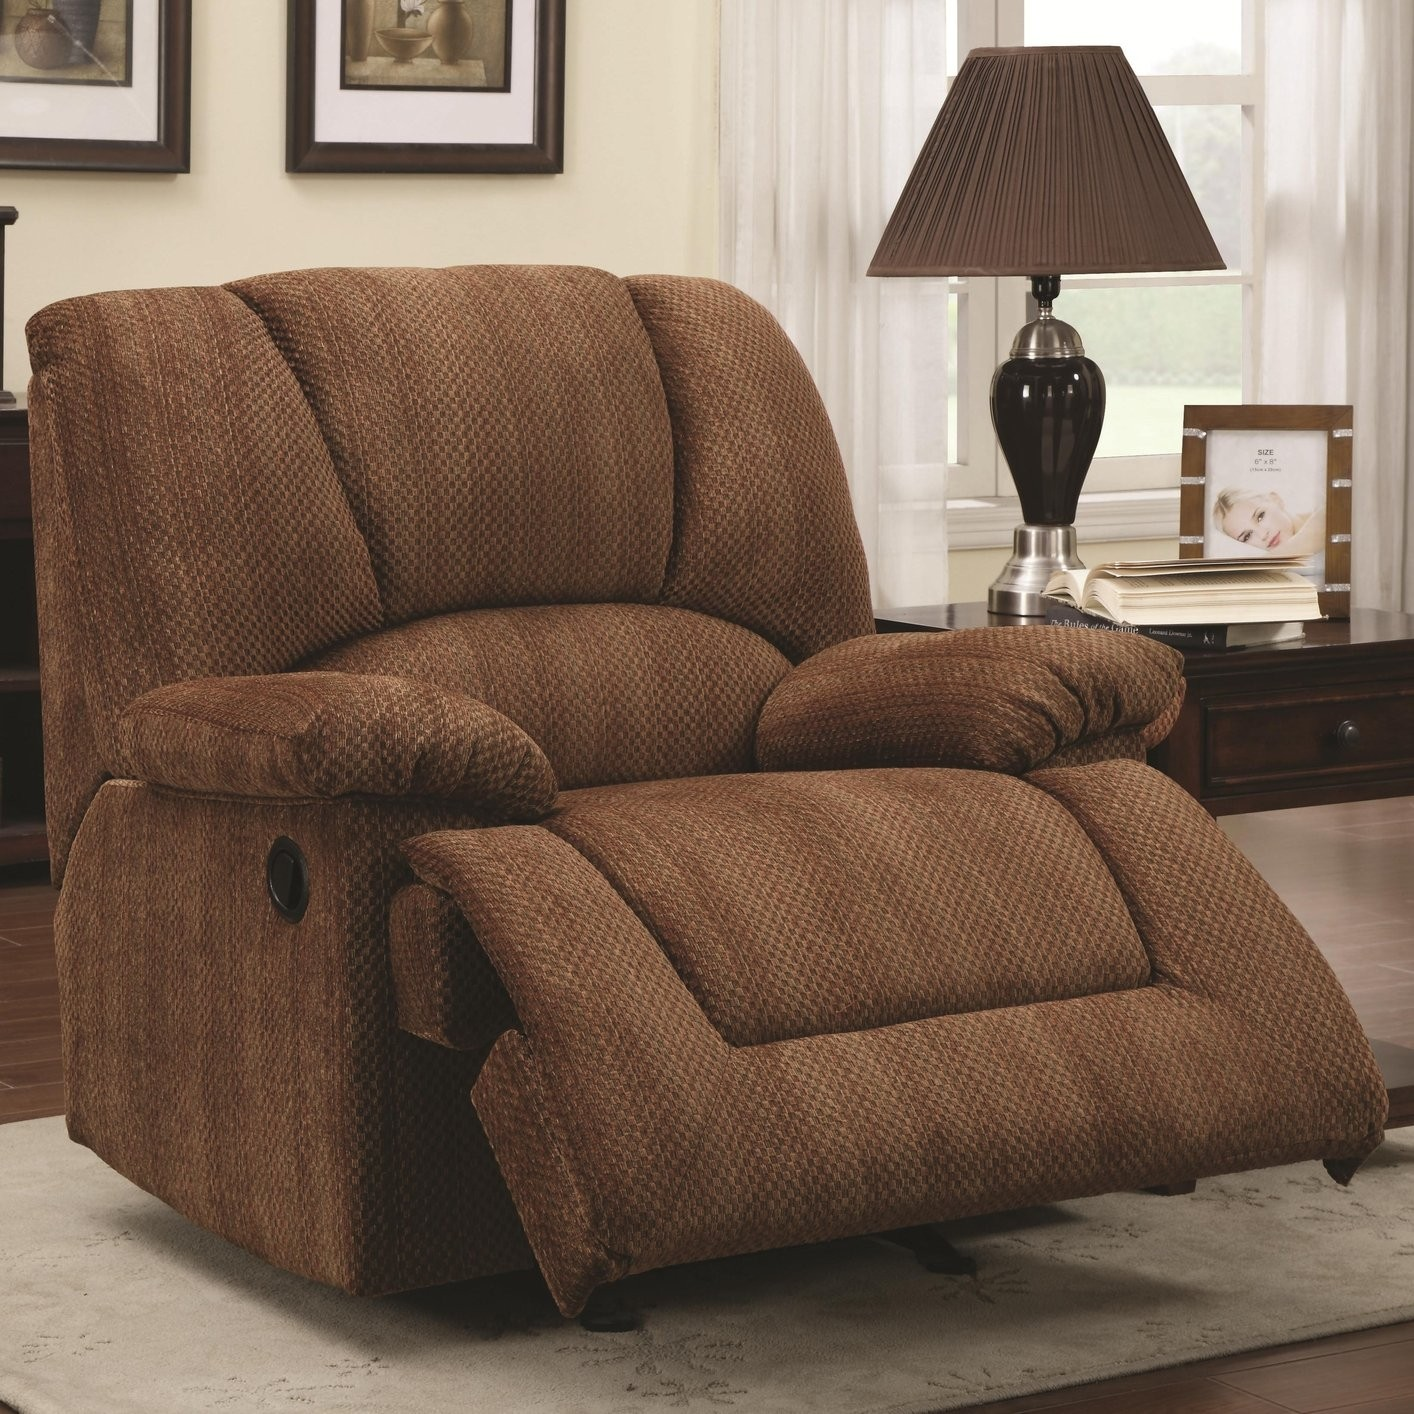 Extra Large Glider Rocker Recliner Chair With Wide Sitting Area